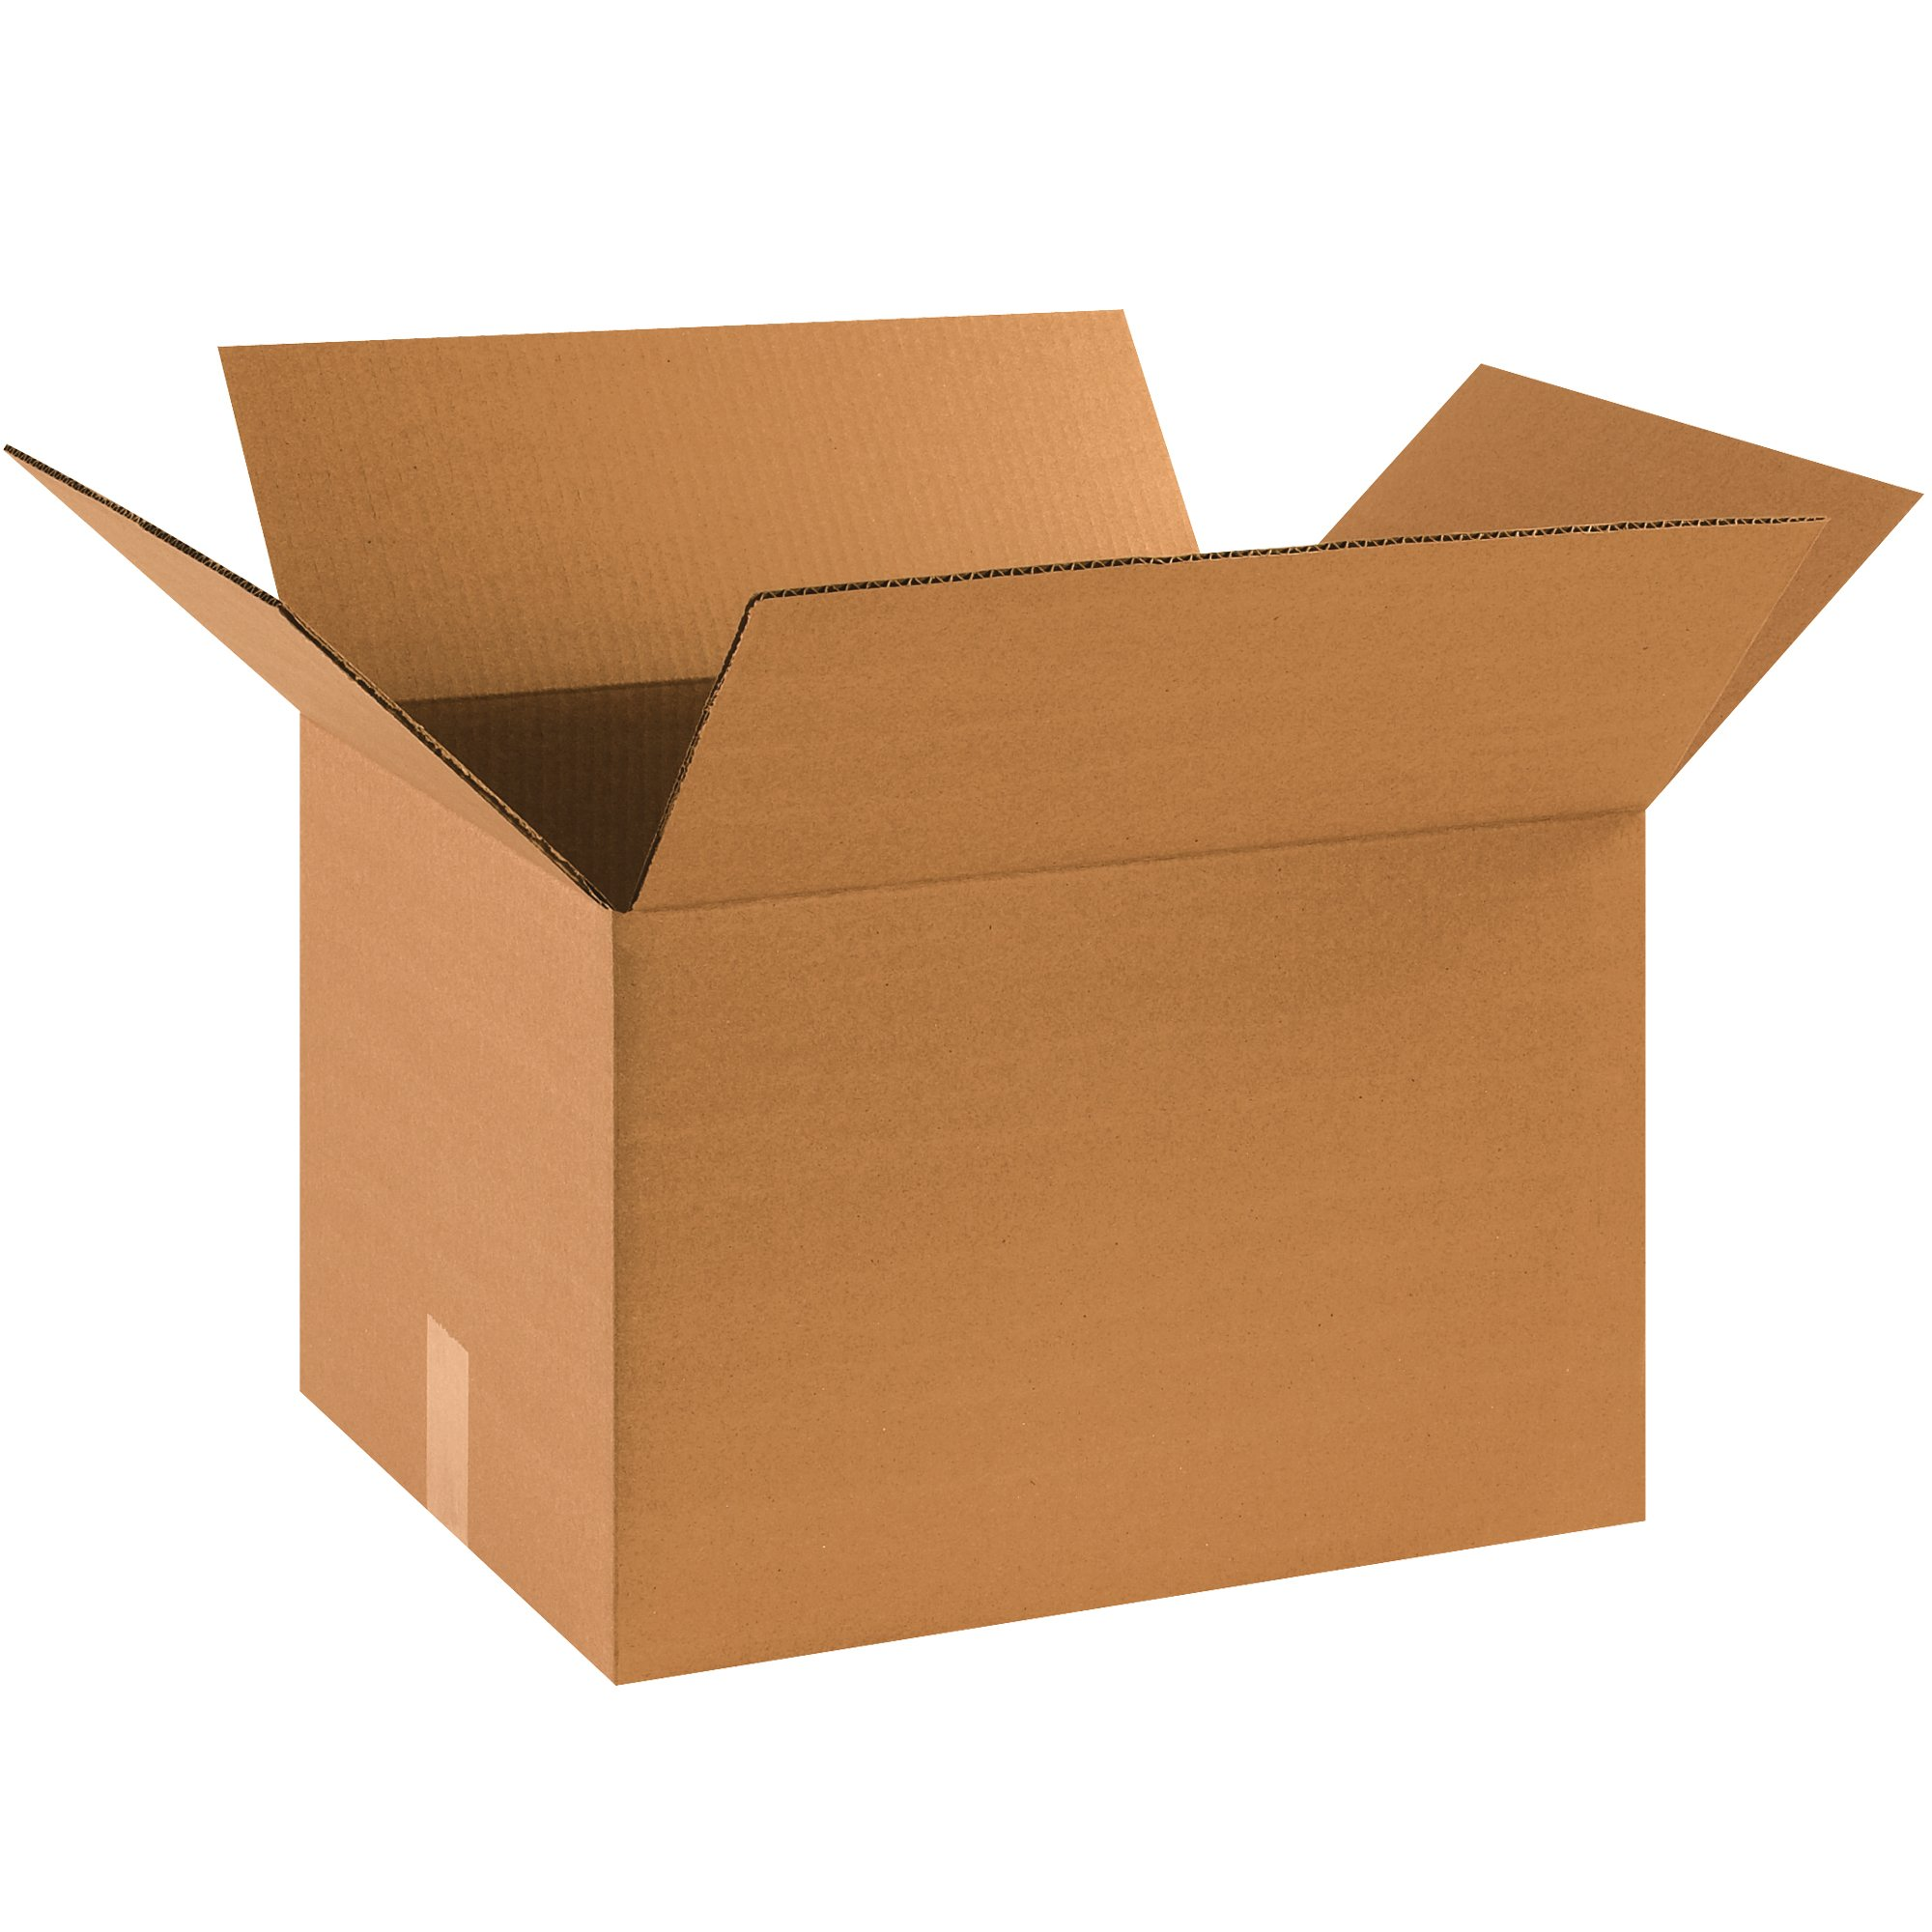 Medium Moving Boxes (Pack of 10) for Packing, Shipping, Moving and Storage